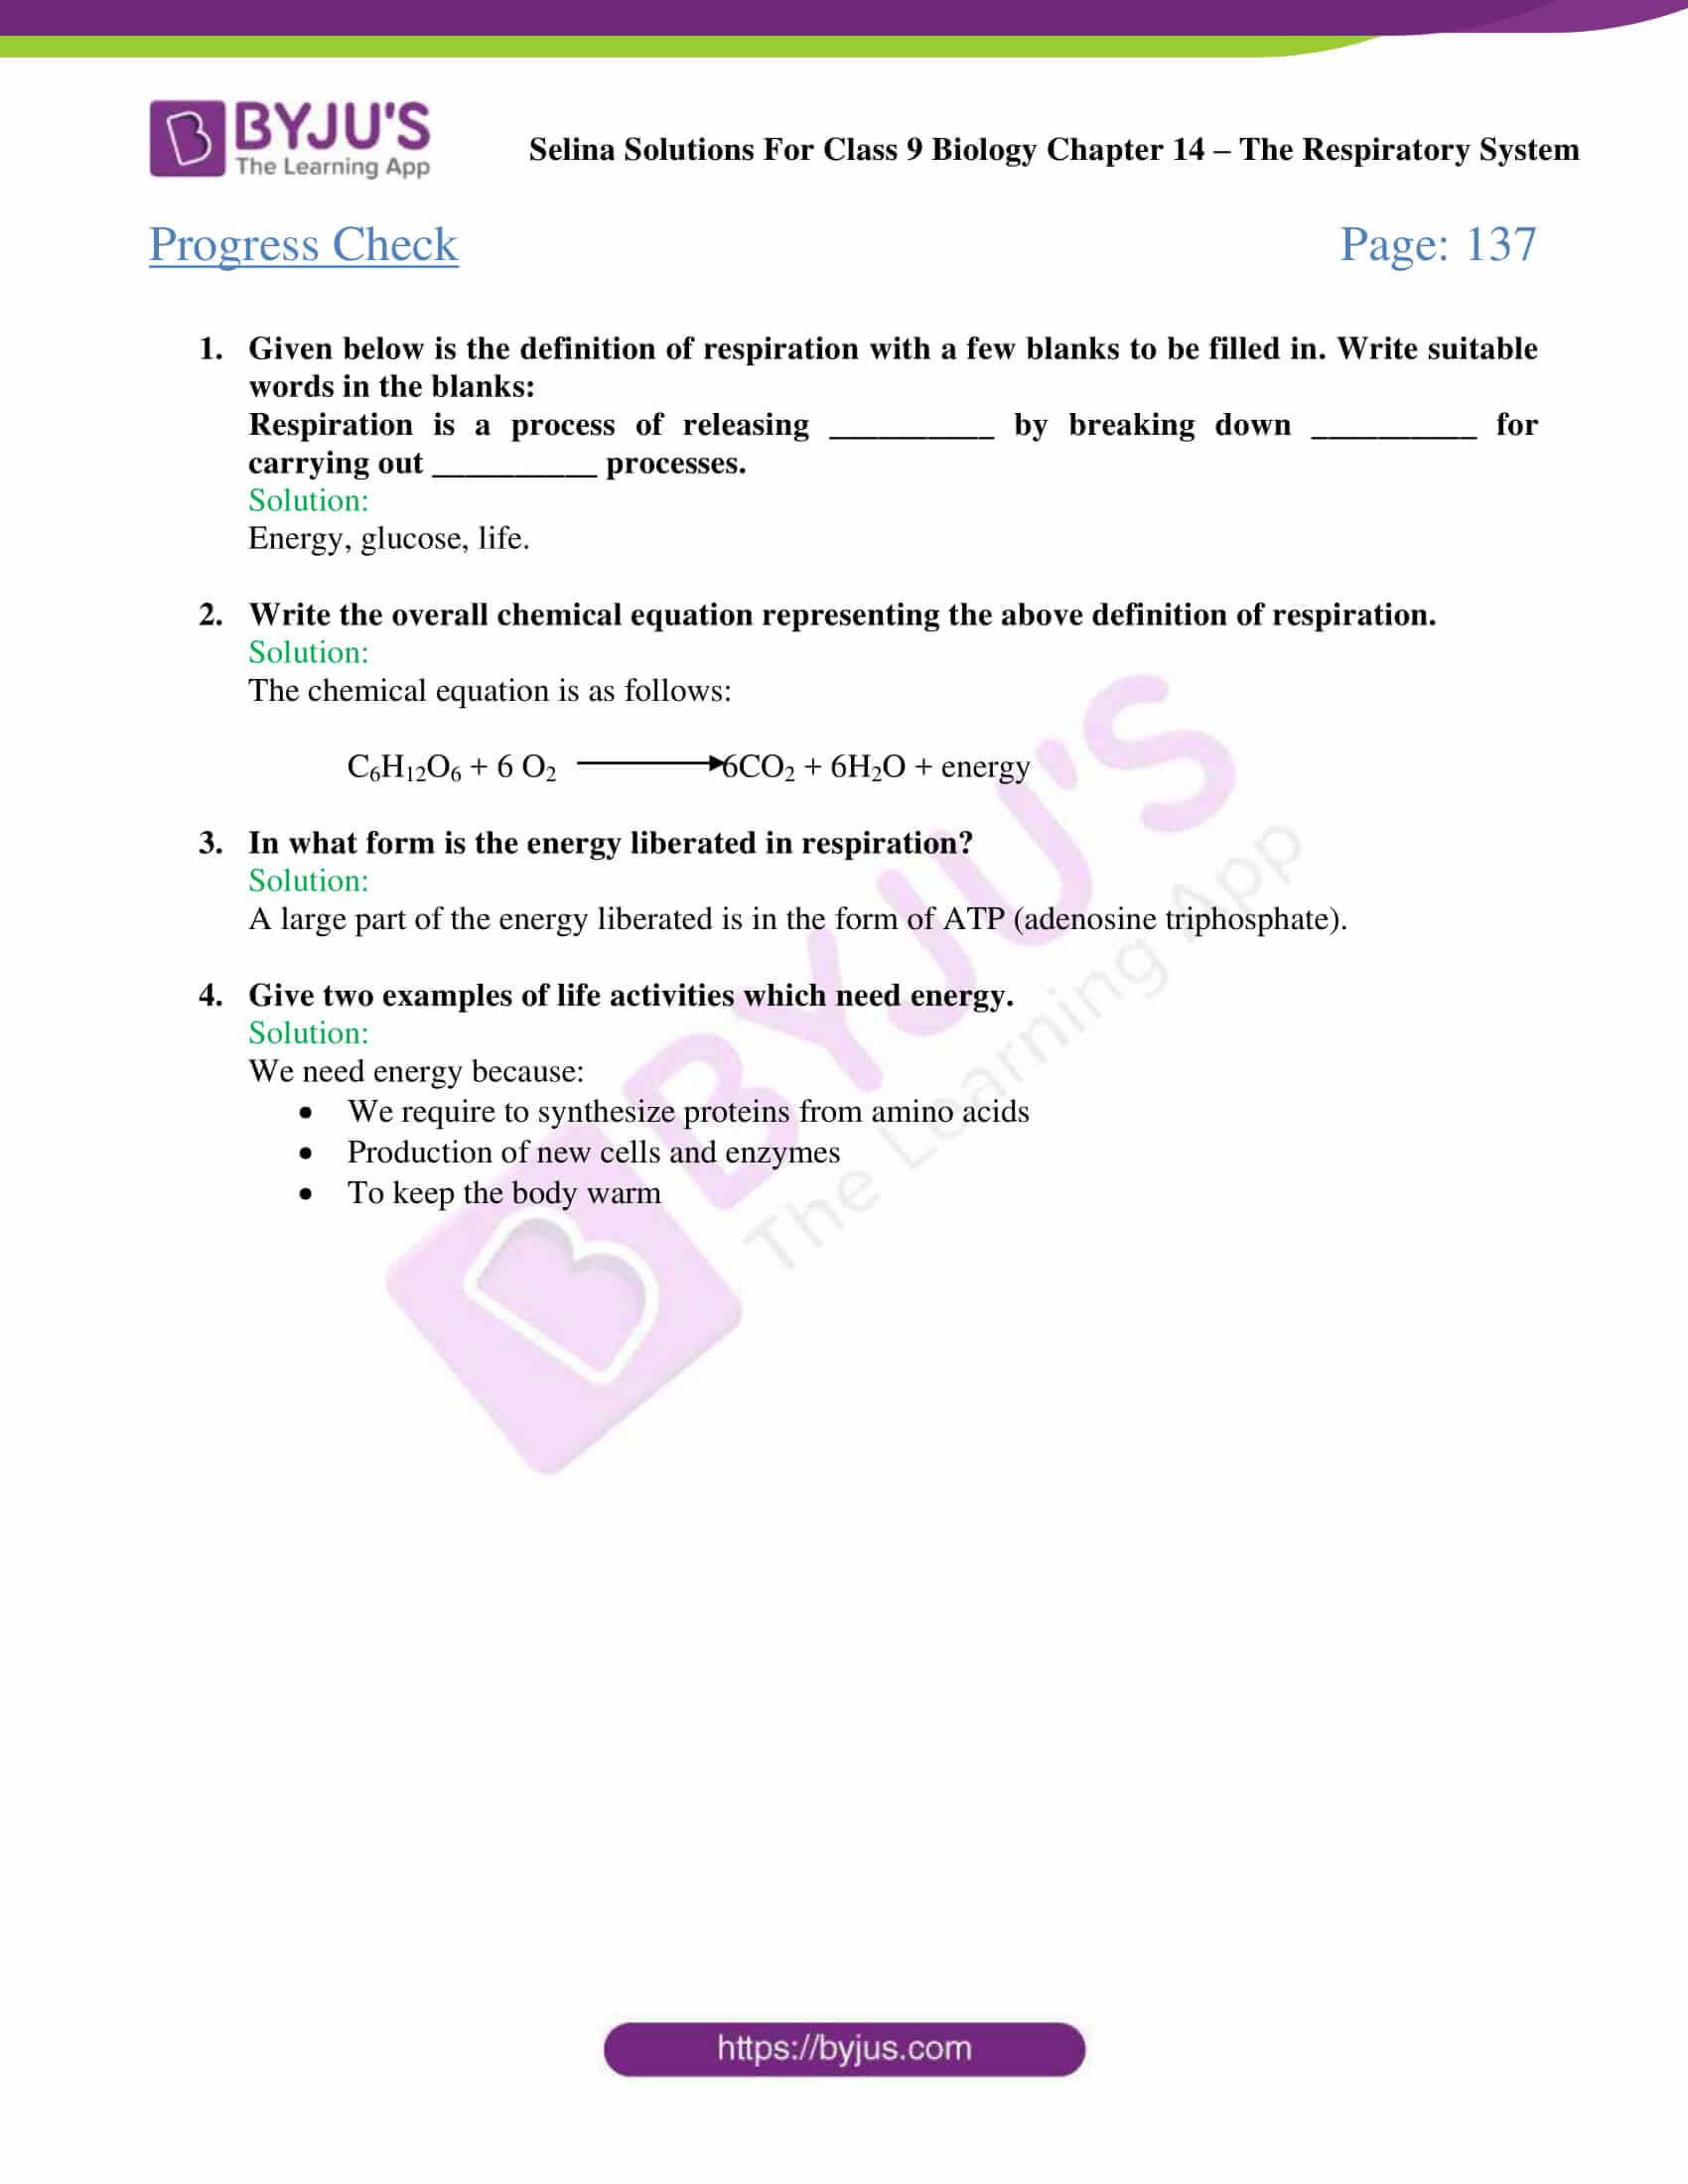 Respiratory System Worksheet Pdf Selina solutions Class 9 Concise Biology Chapter 14 the